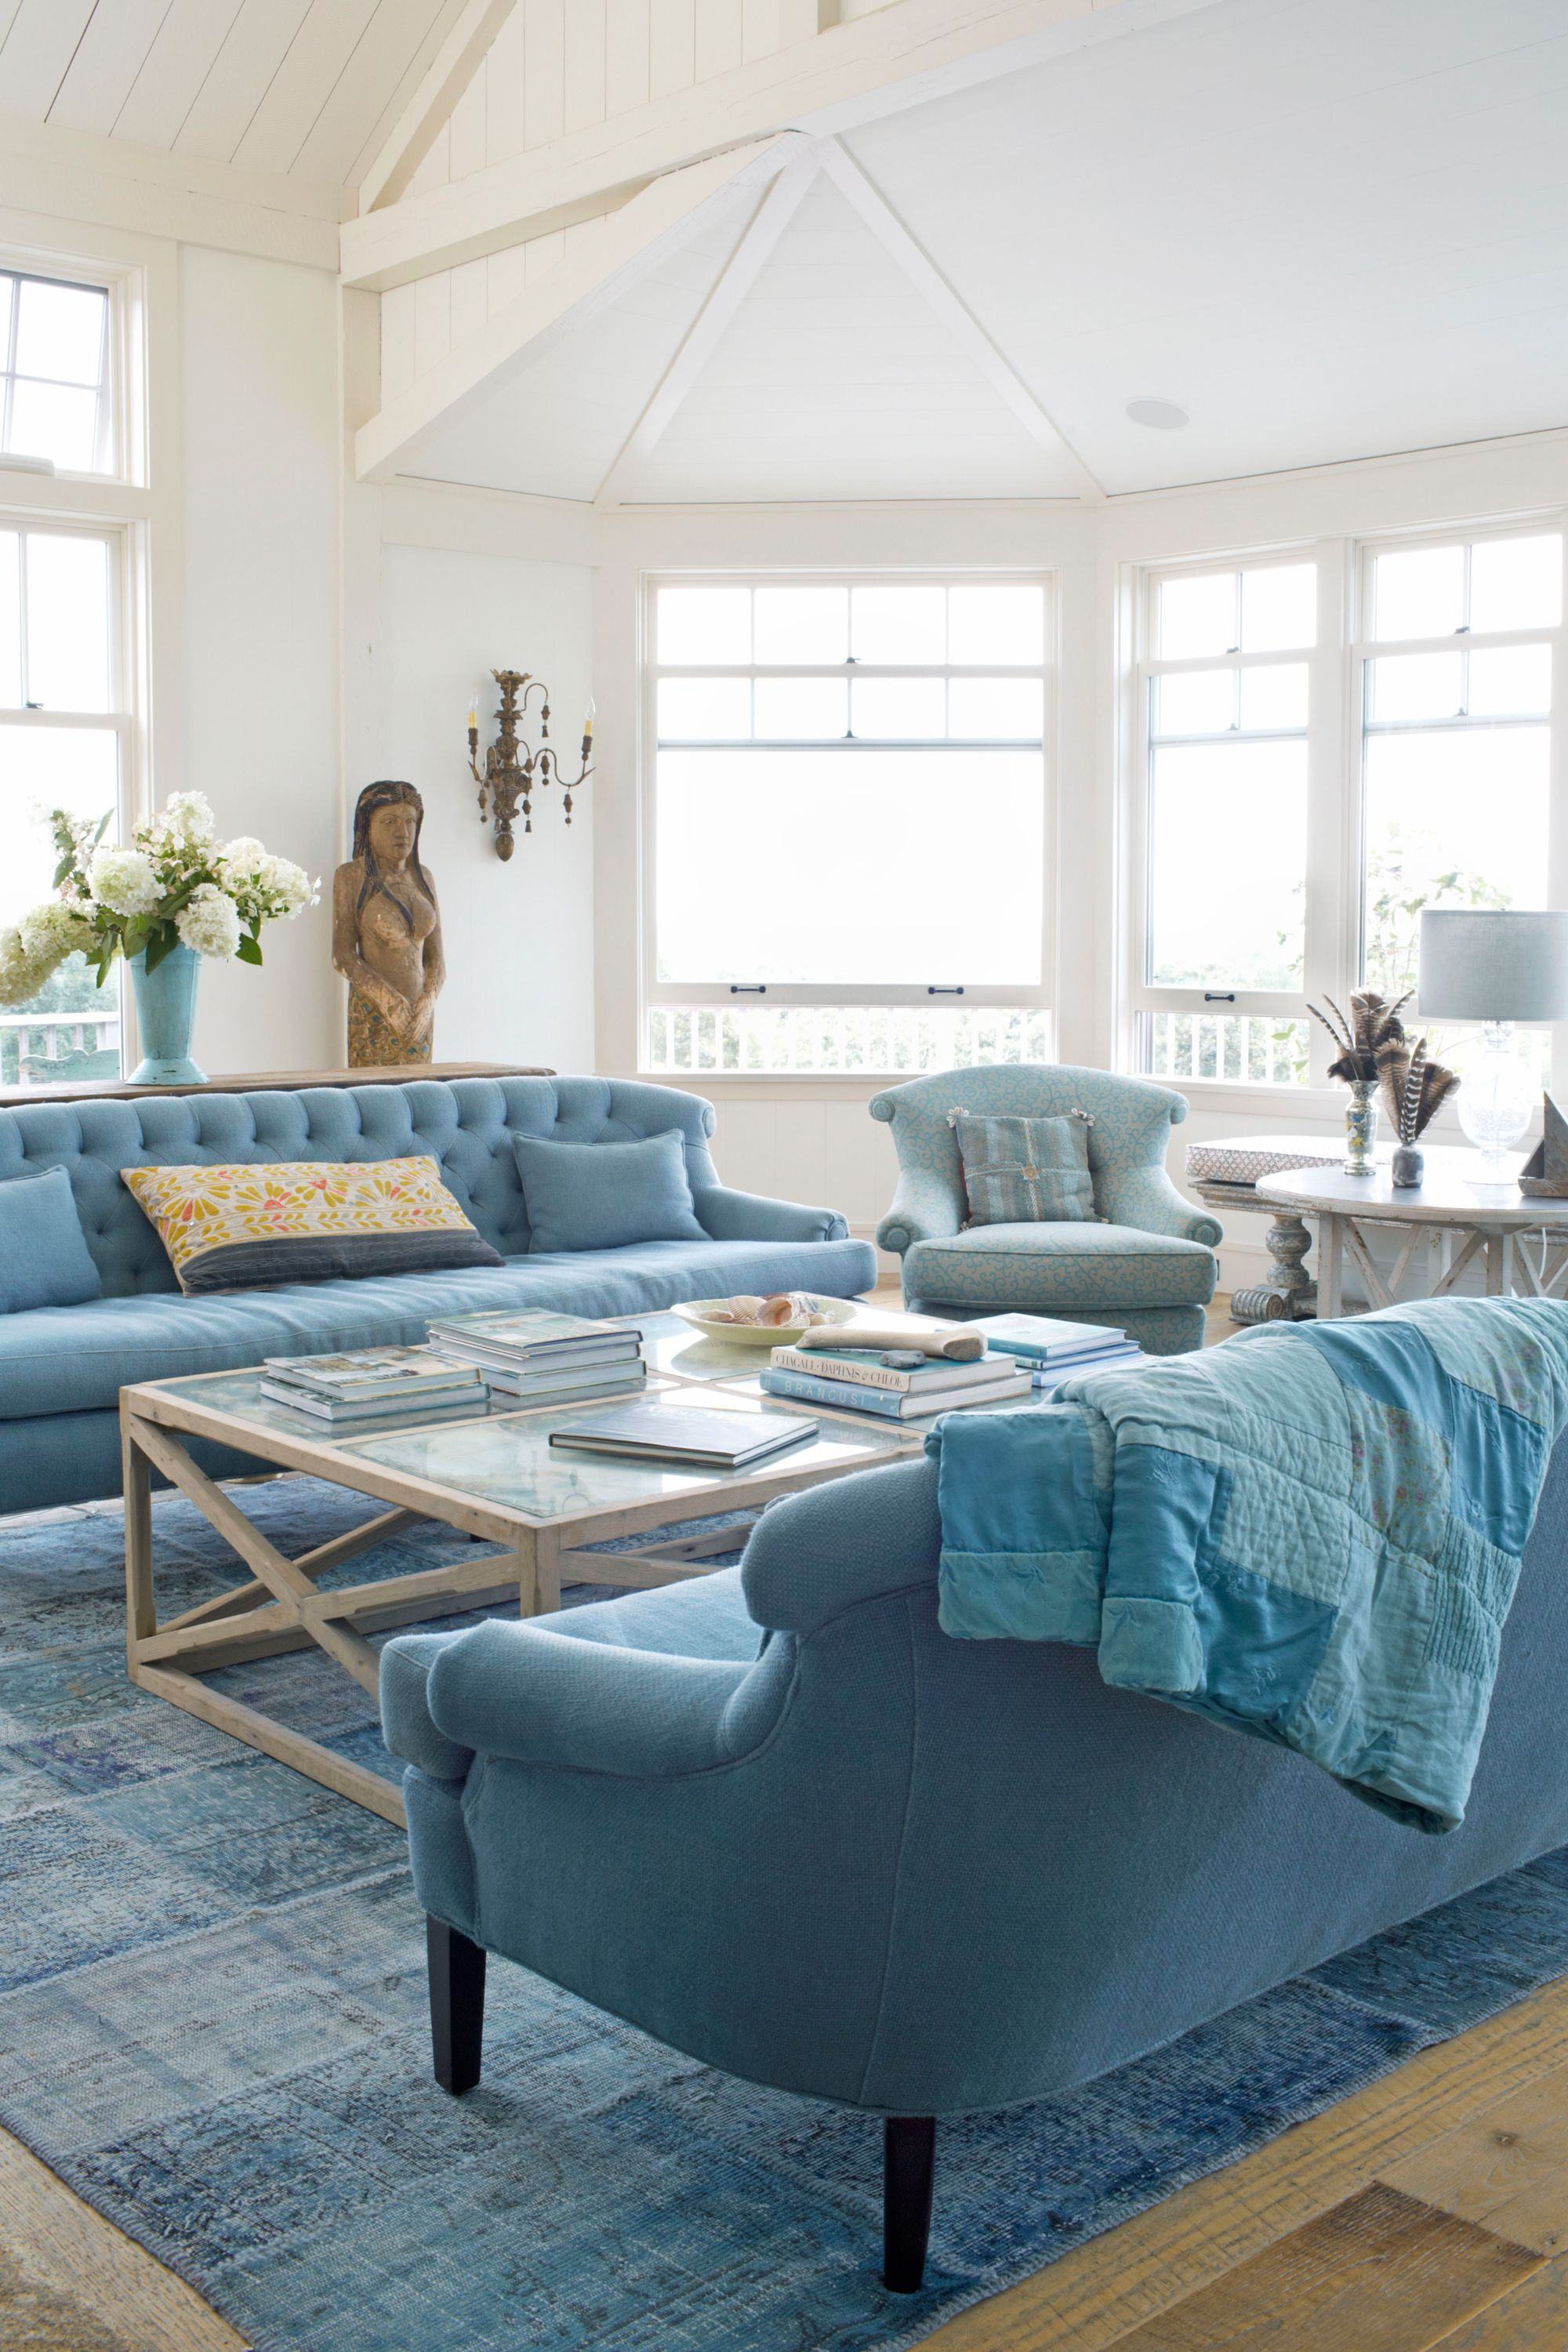 25 Reasons Why Blue Is the Best Color for Your Home